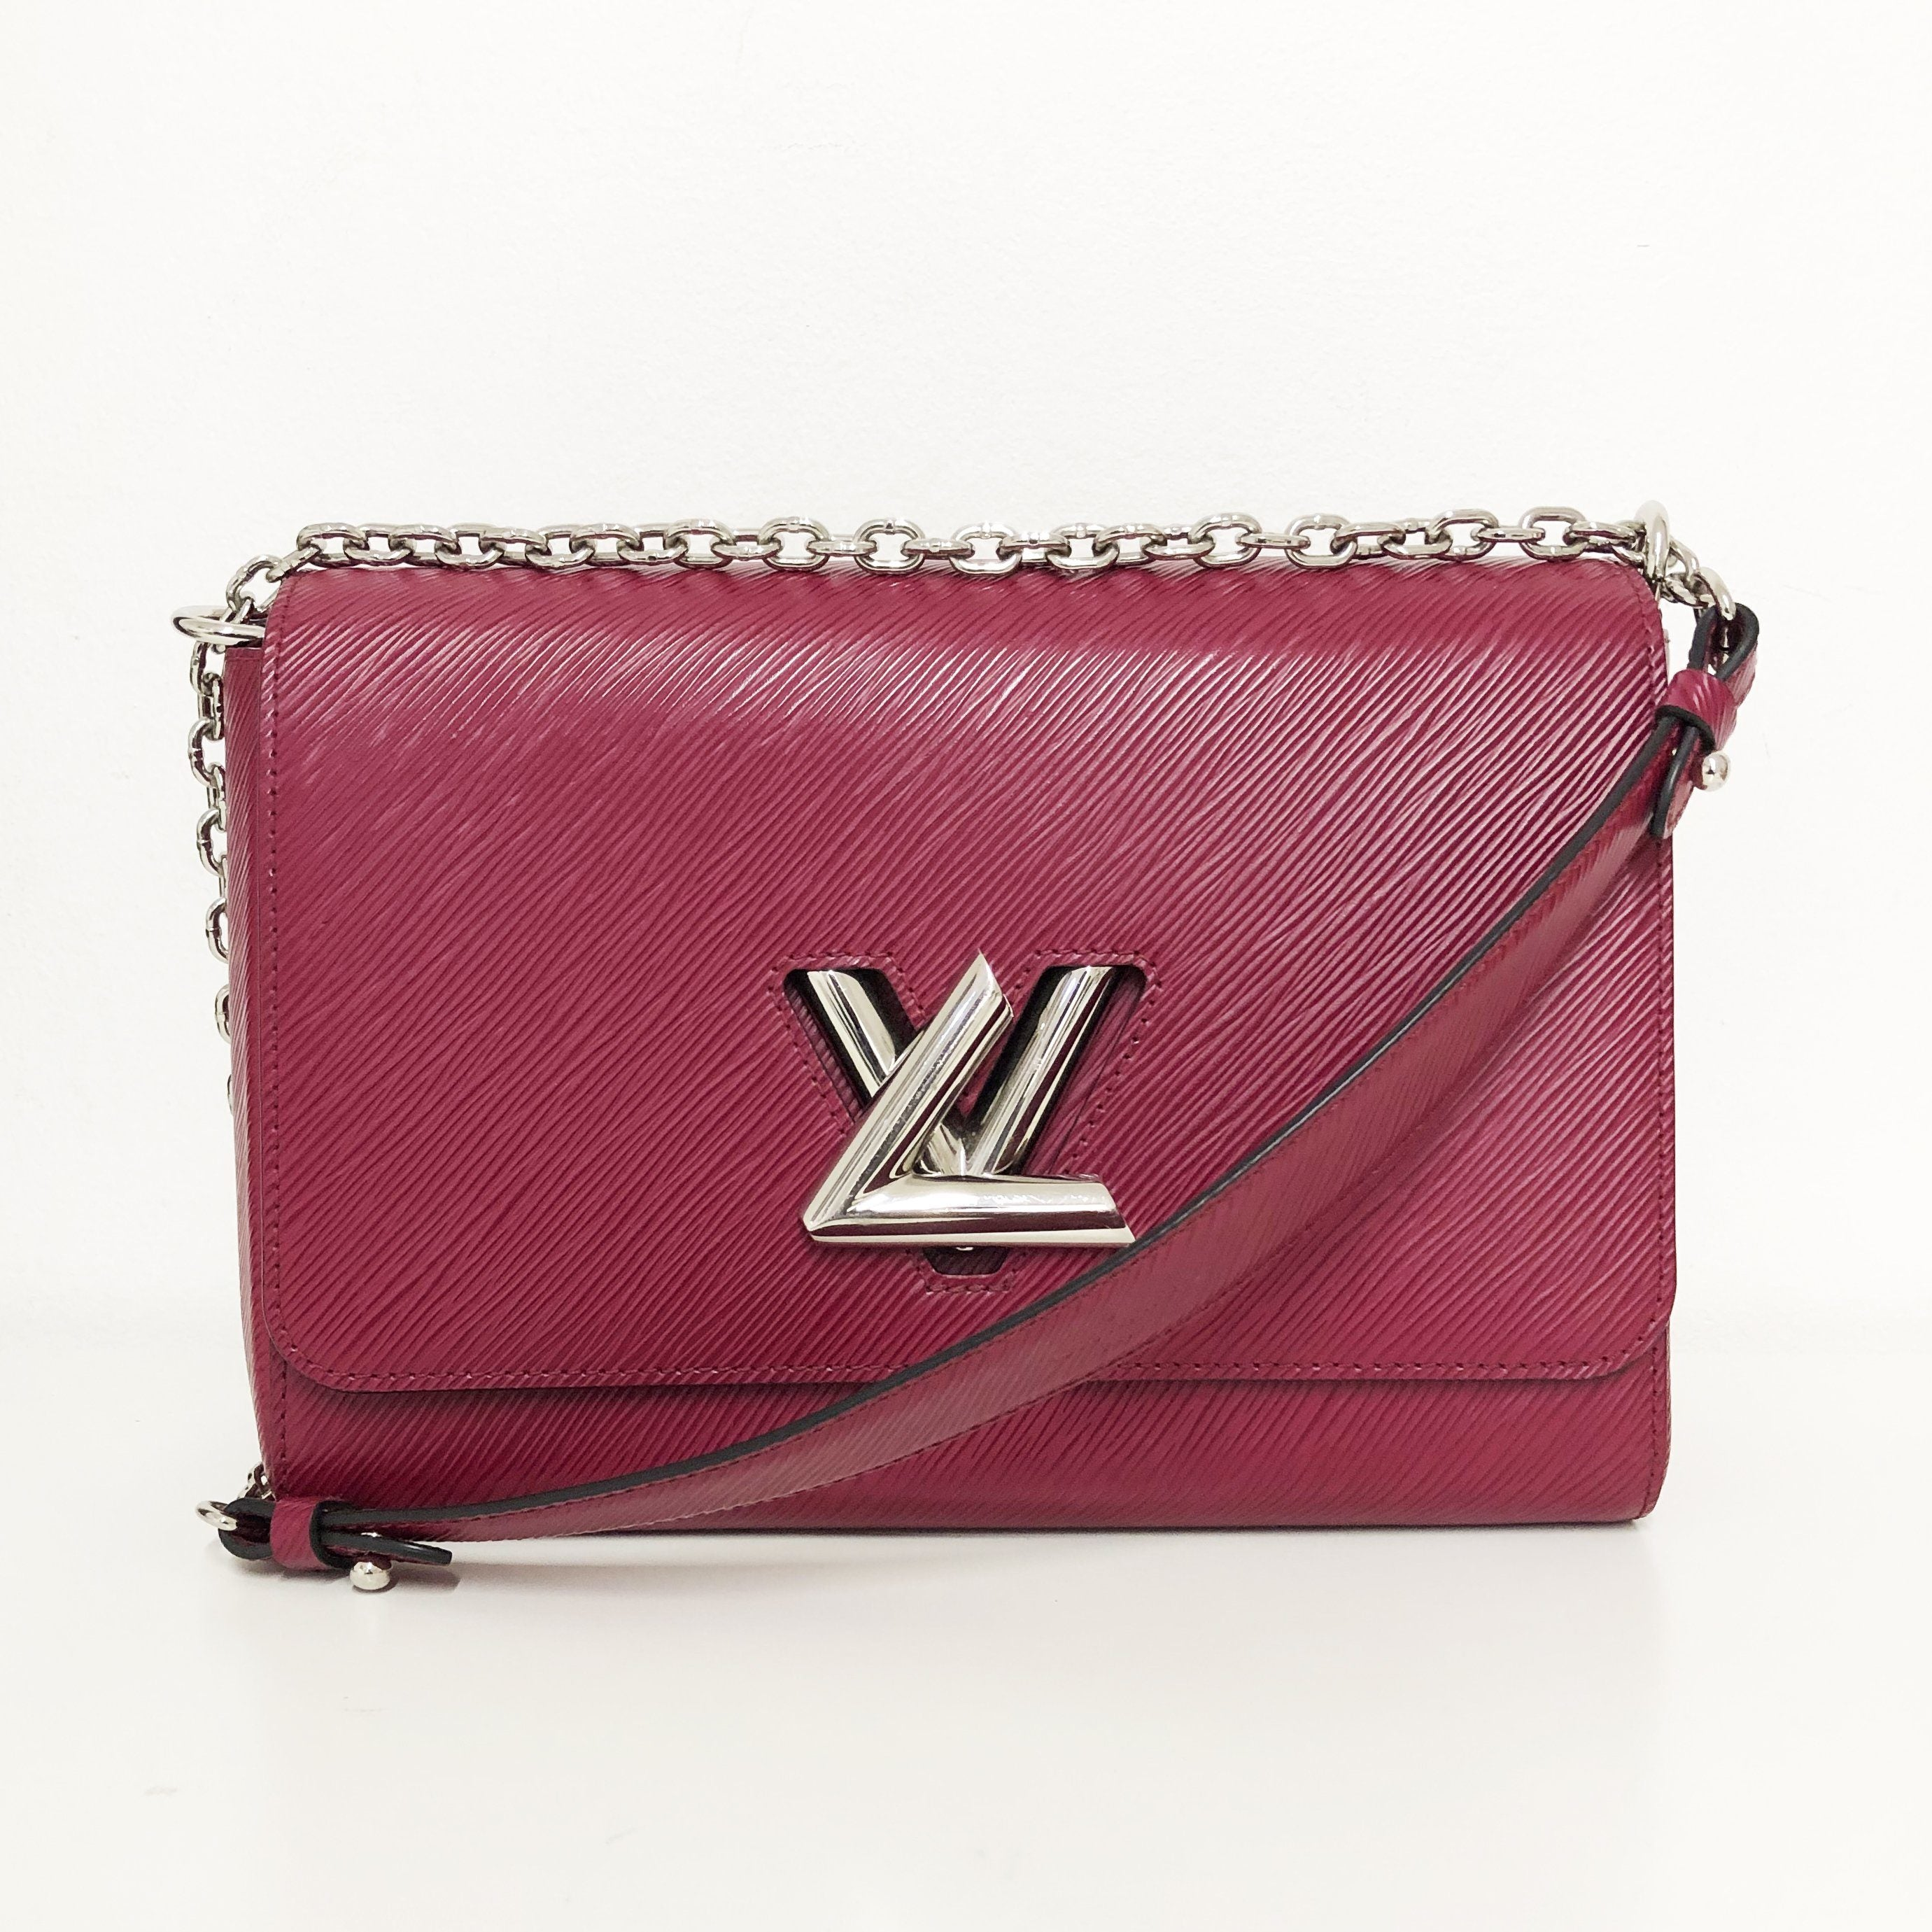 Louis Vuitton Epi Leather Twist GM Bag